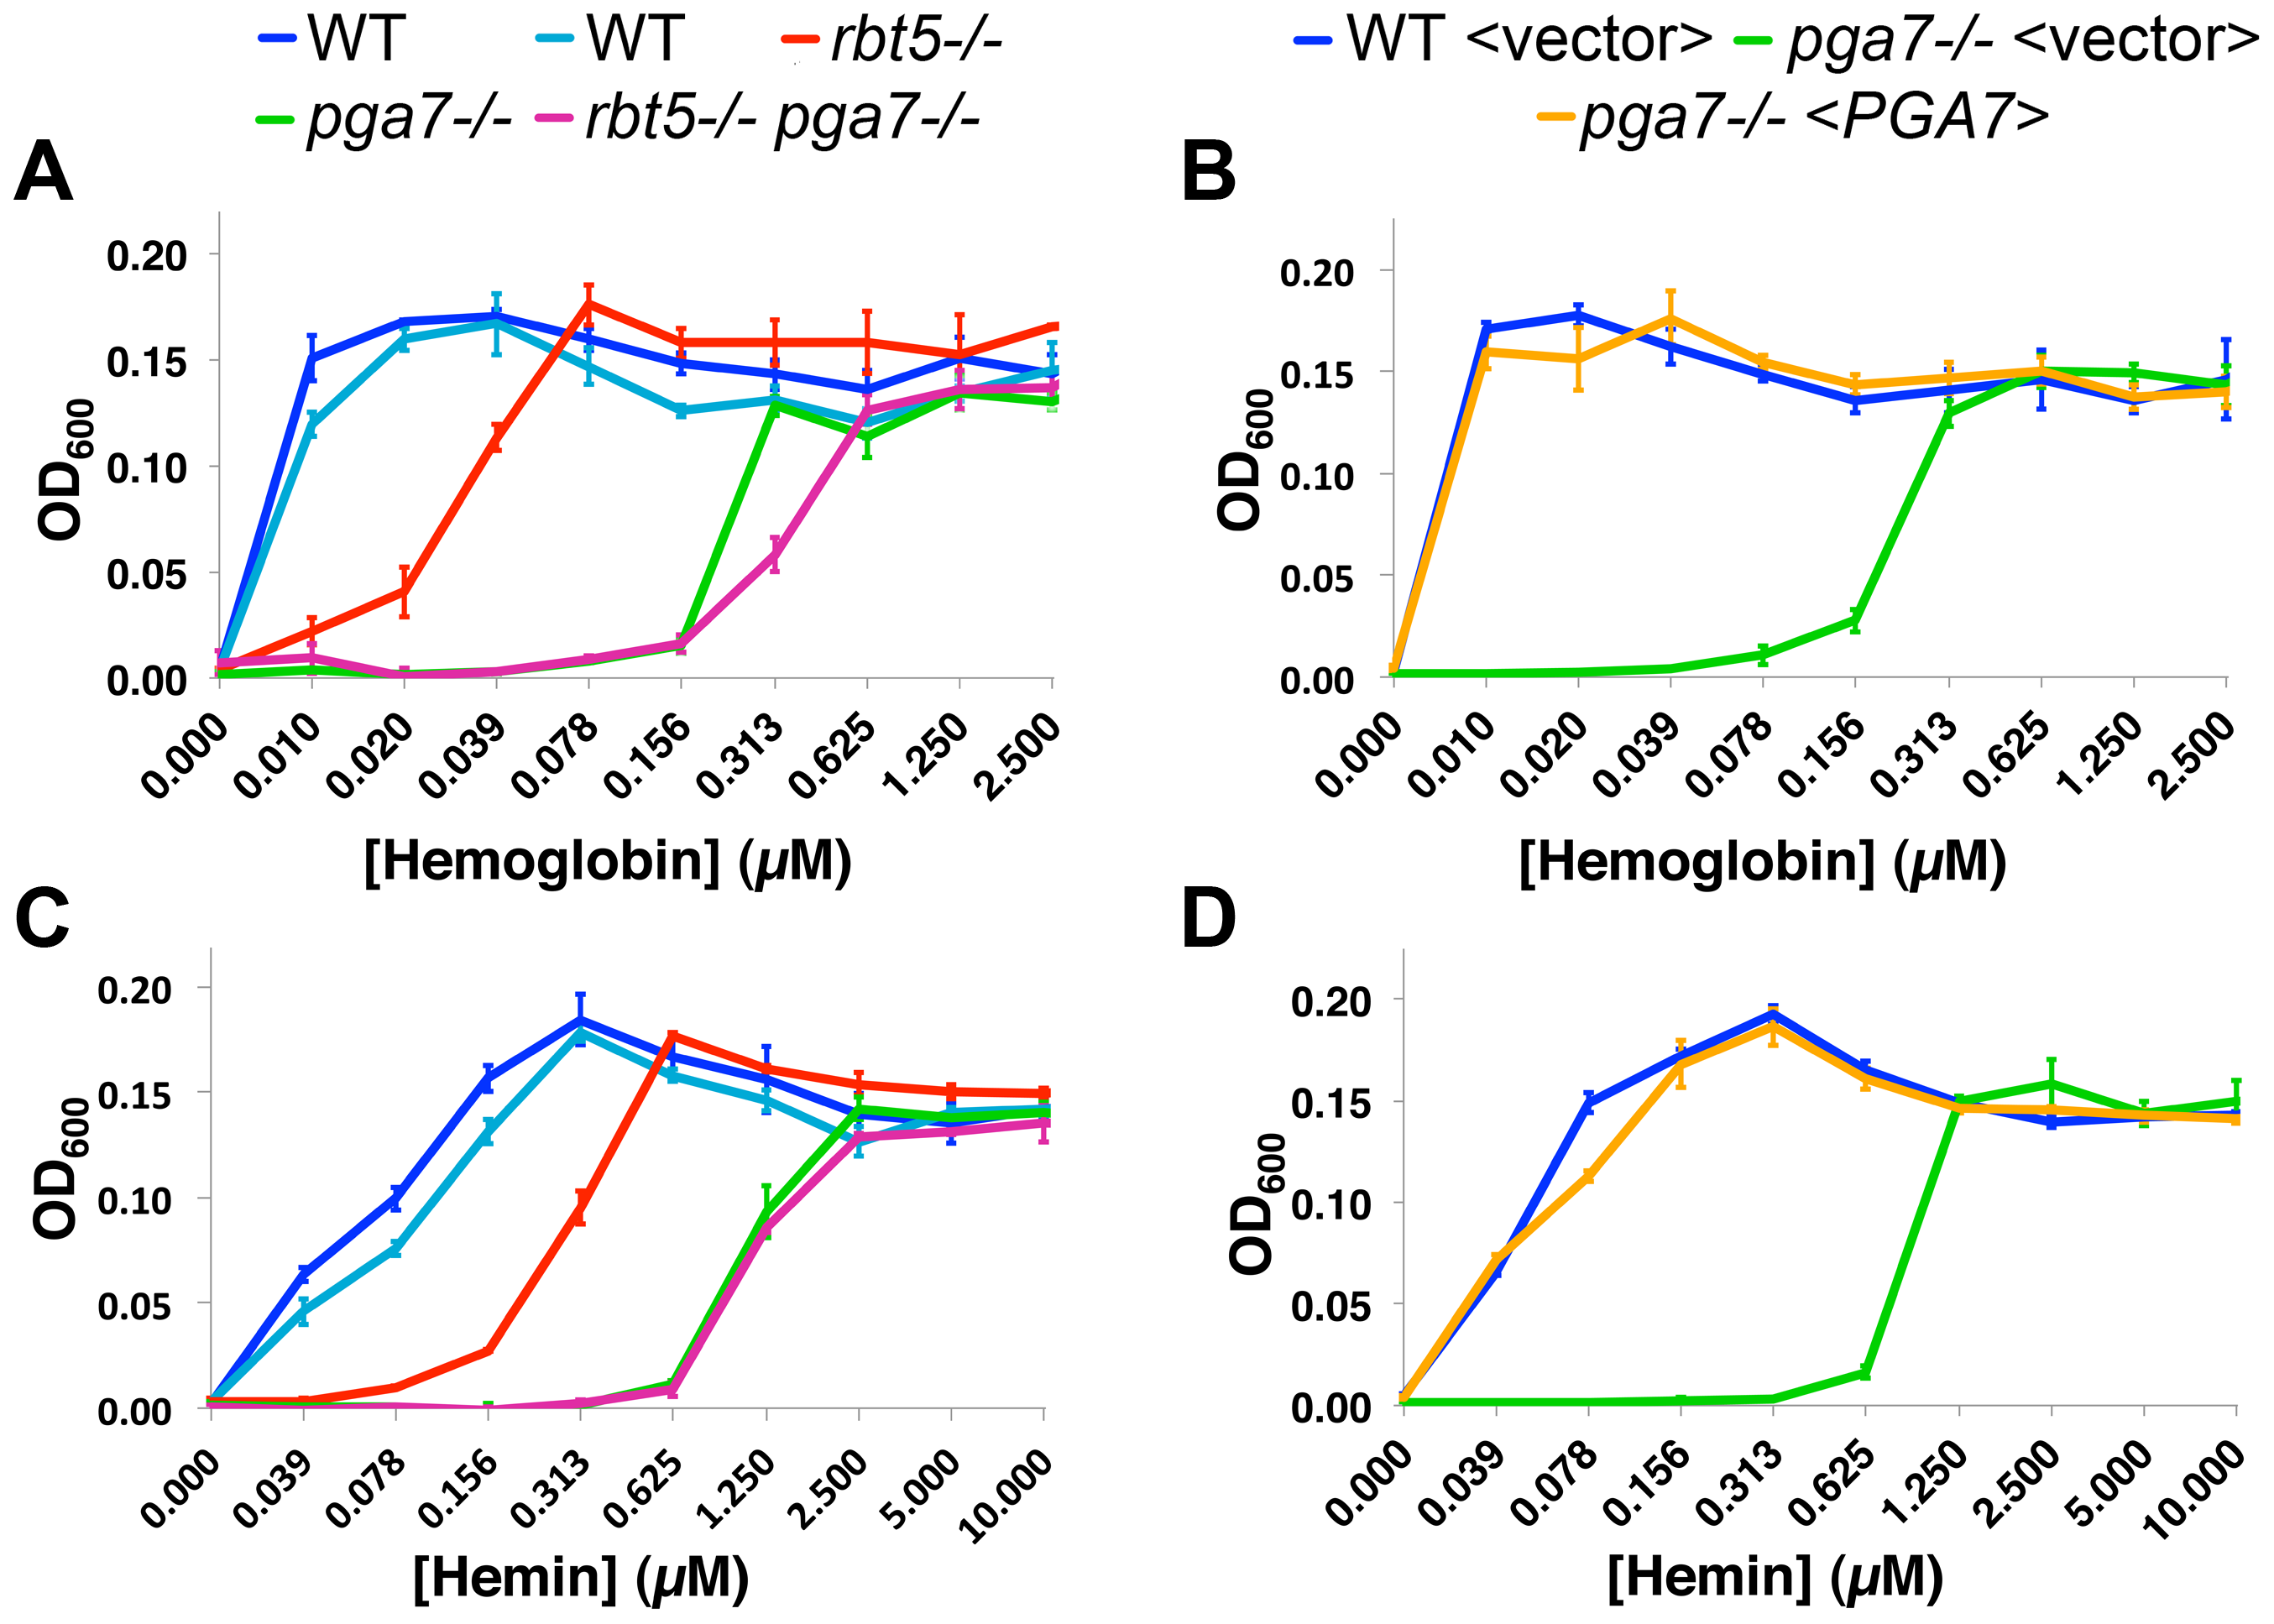 Pga7 plays a central role in heme and hemoglobin-iron utilization in <i>C. albicans</i>.